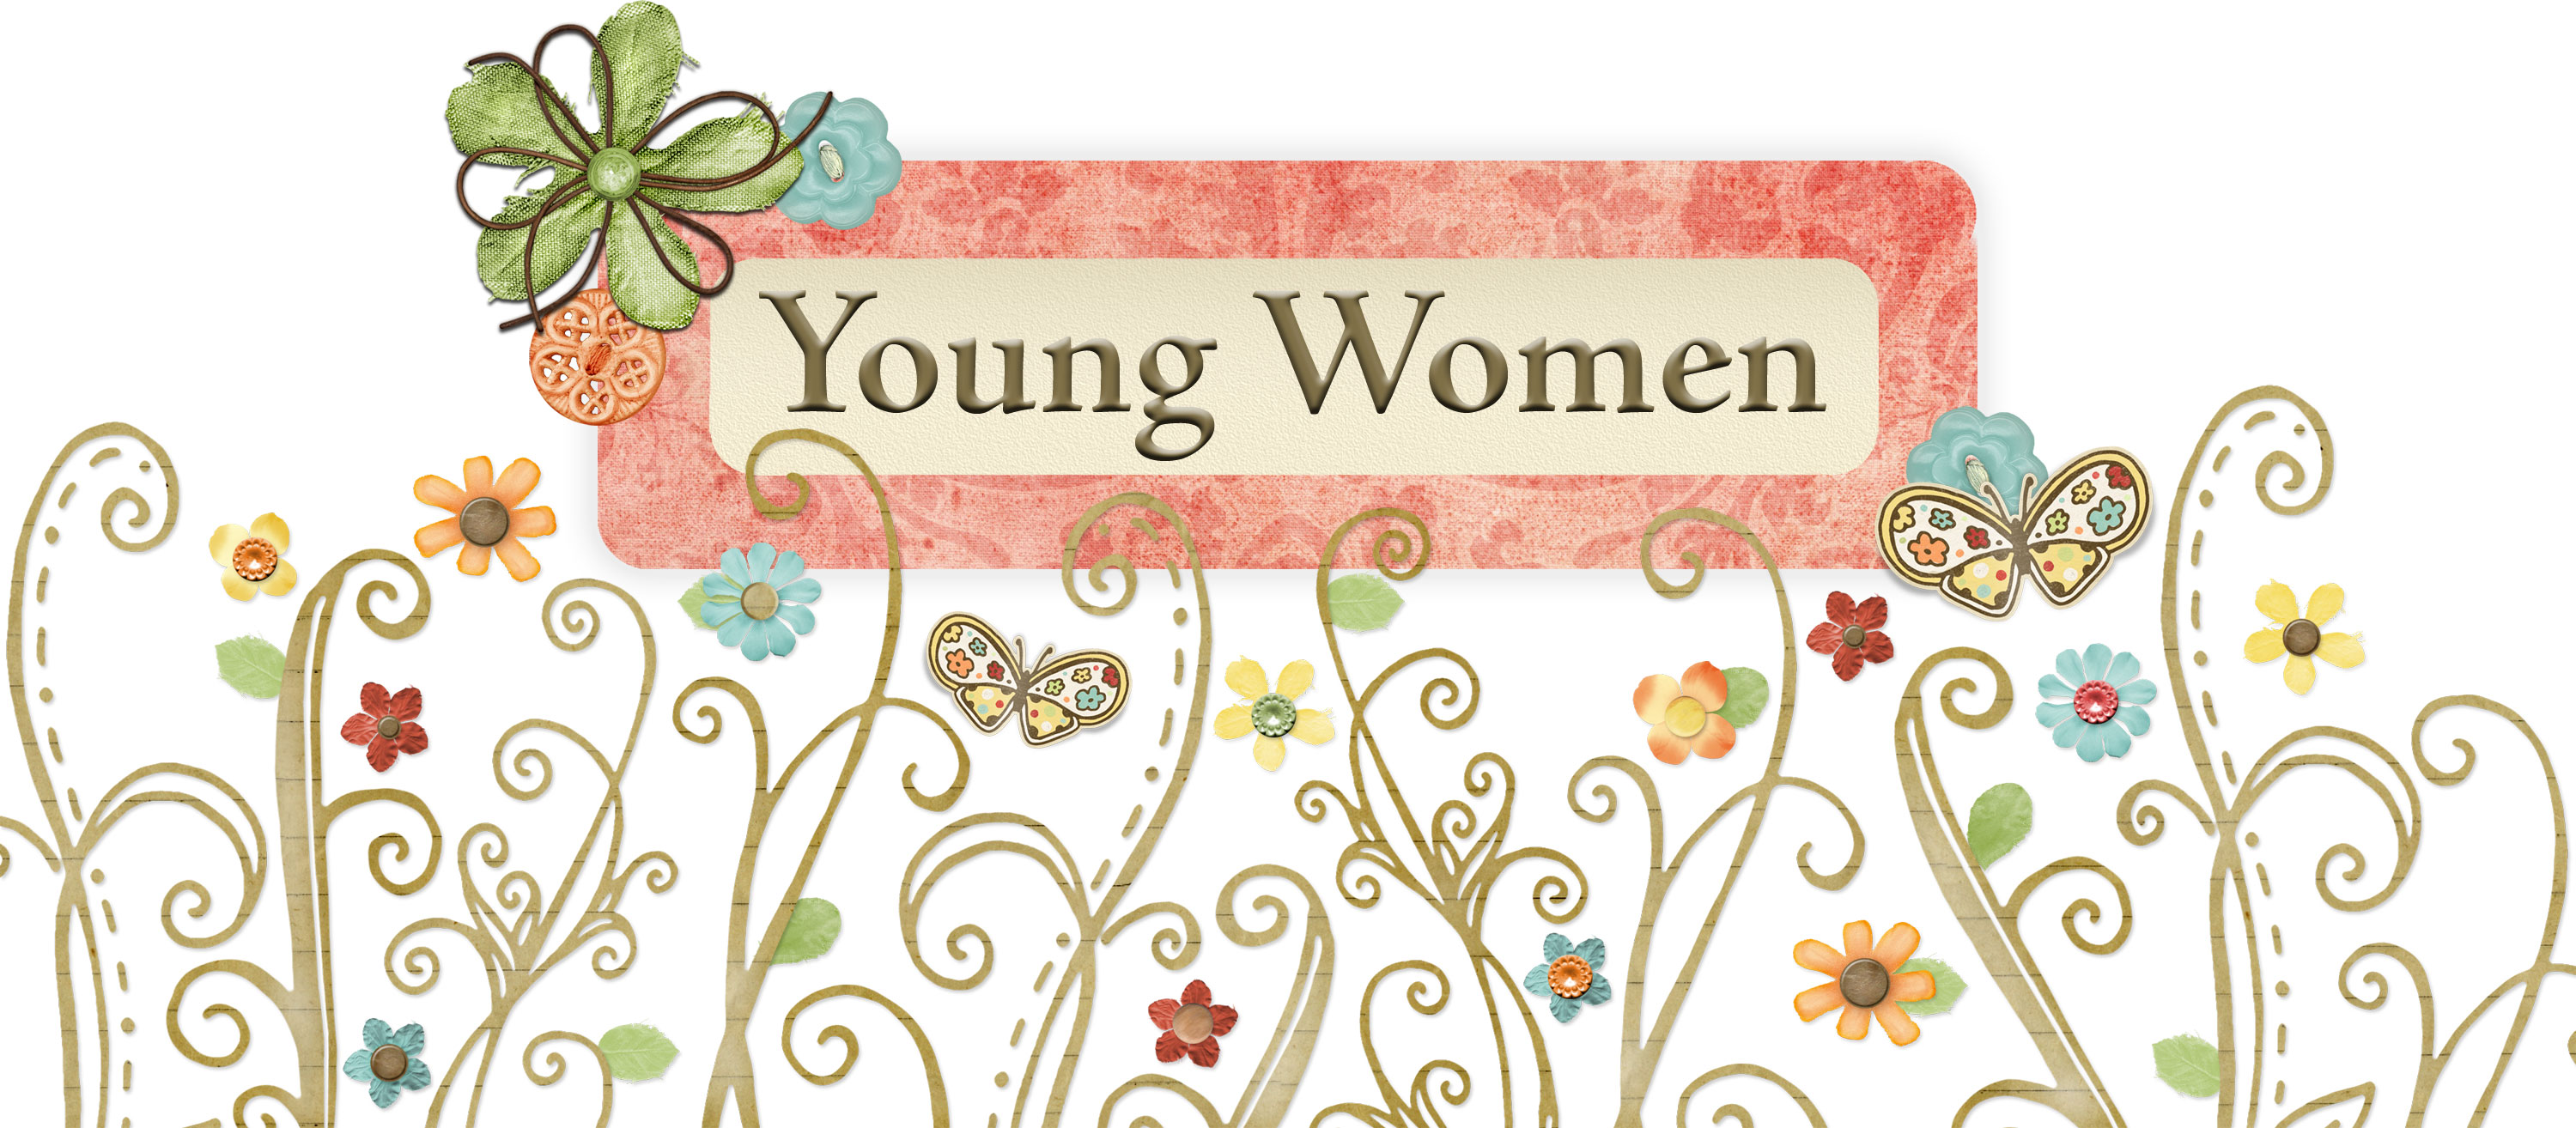 Lds Young Women Png Hd Transparent Lds Young Women Hd Png